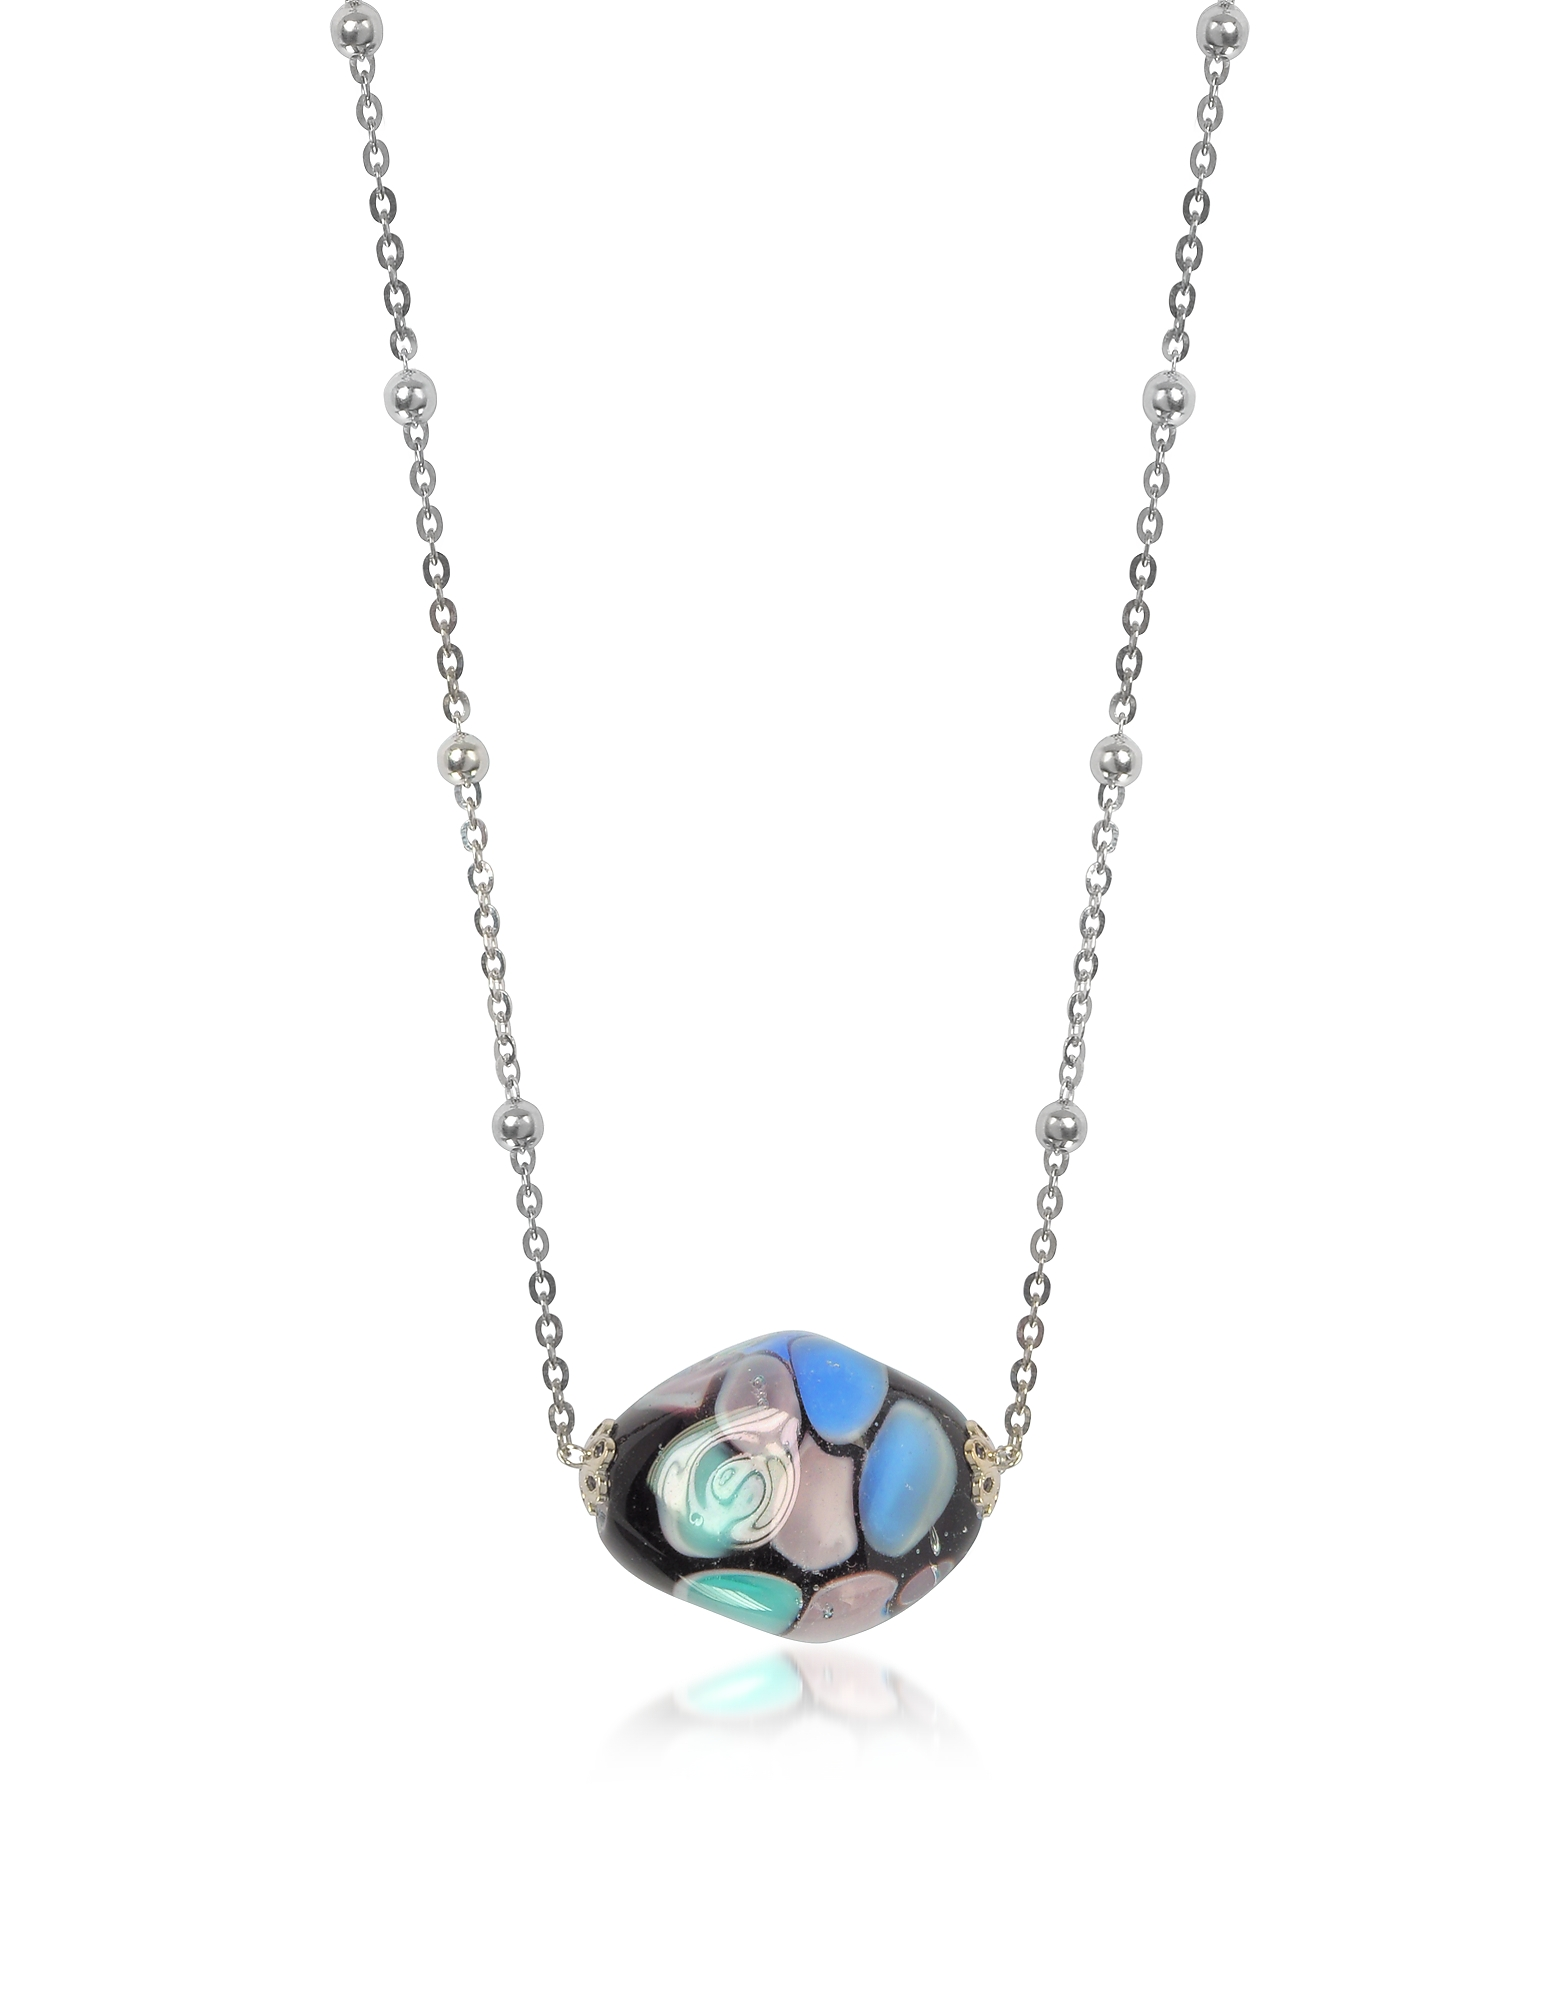 Antica Murrina Necklaces, Smeralda Glass Beads Sterling Silver Necklace